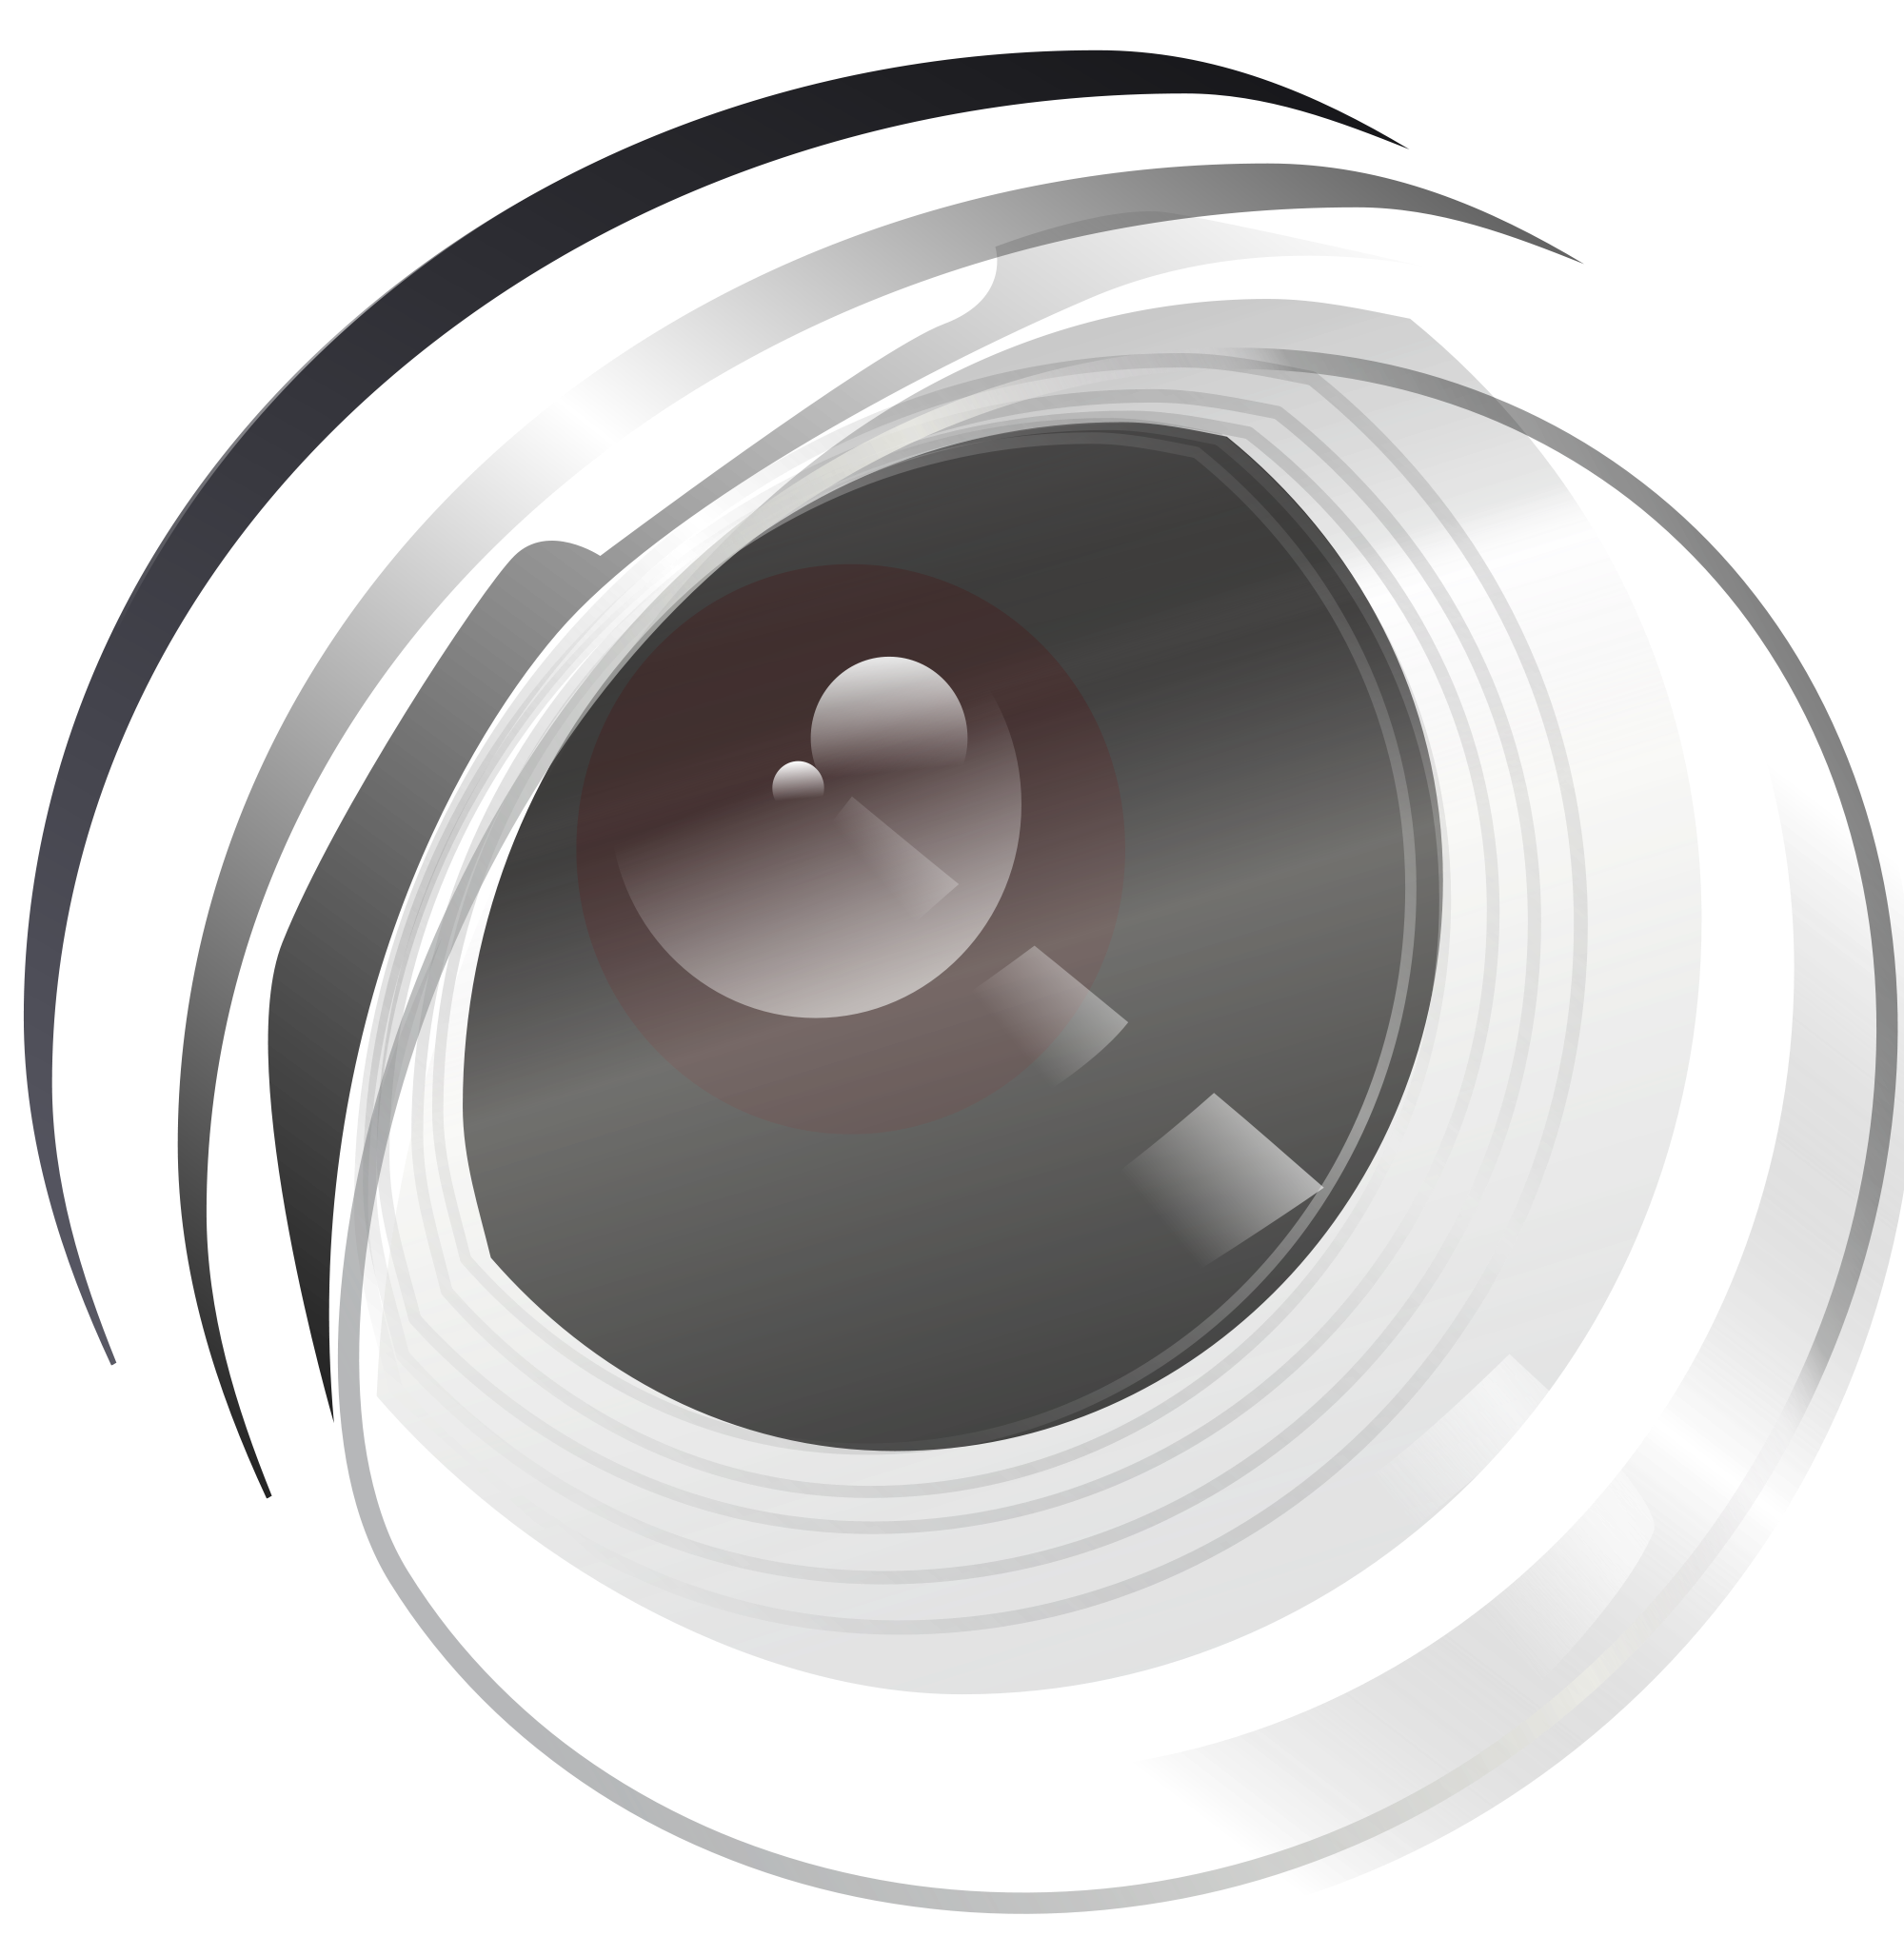 Free camera download clip. Lens drawing logo hd png png black and white stock